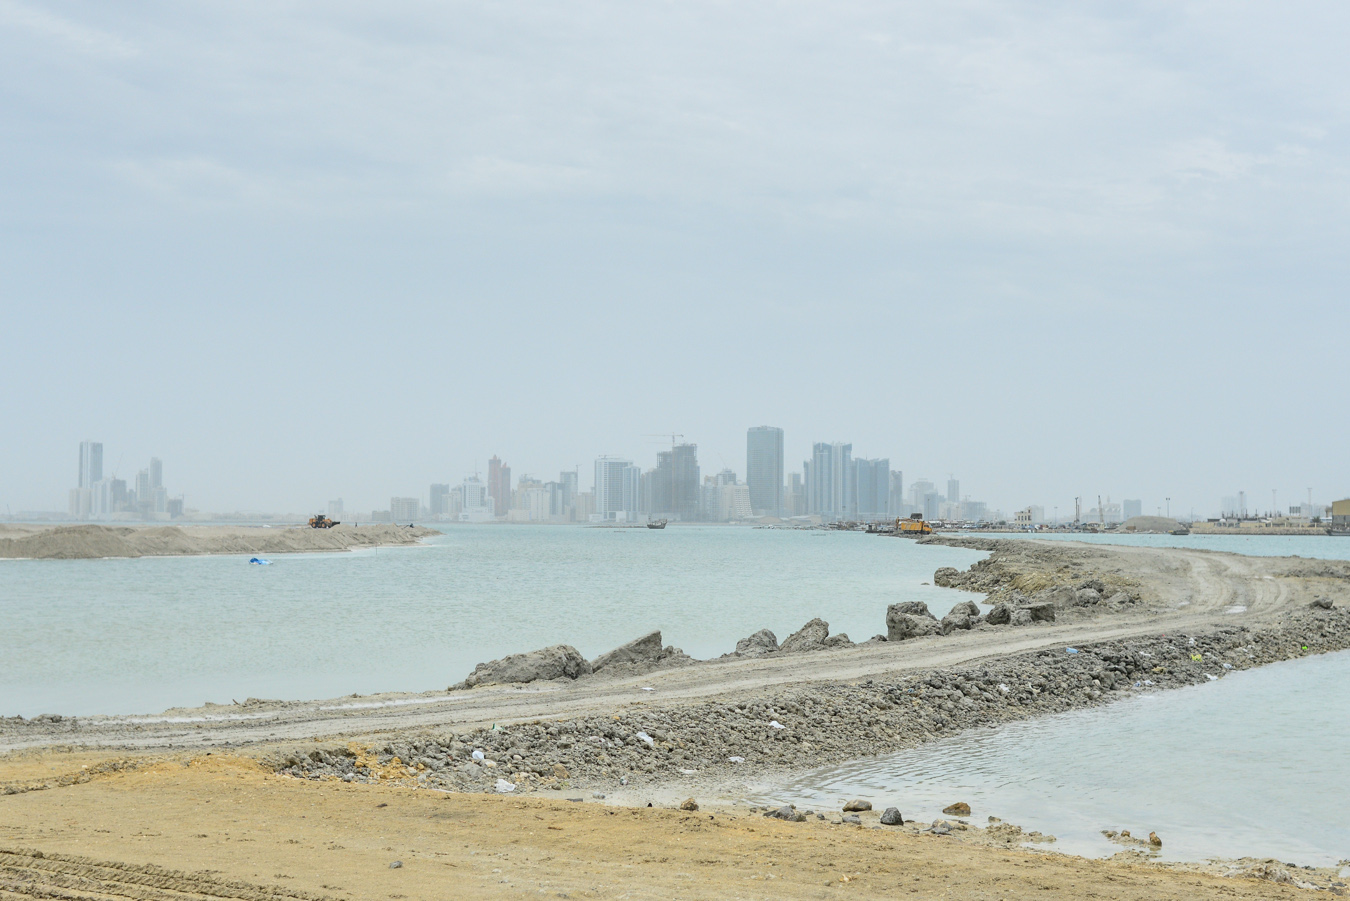 View of the sea surrounding Bahrain